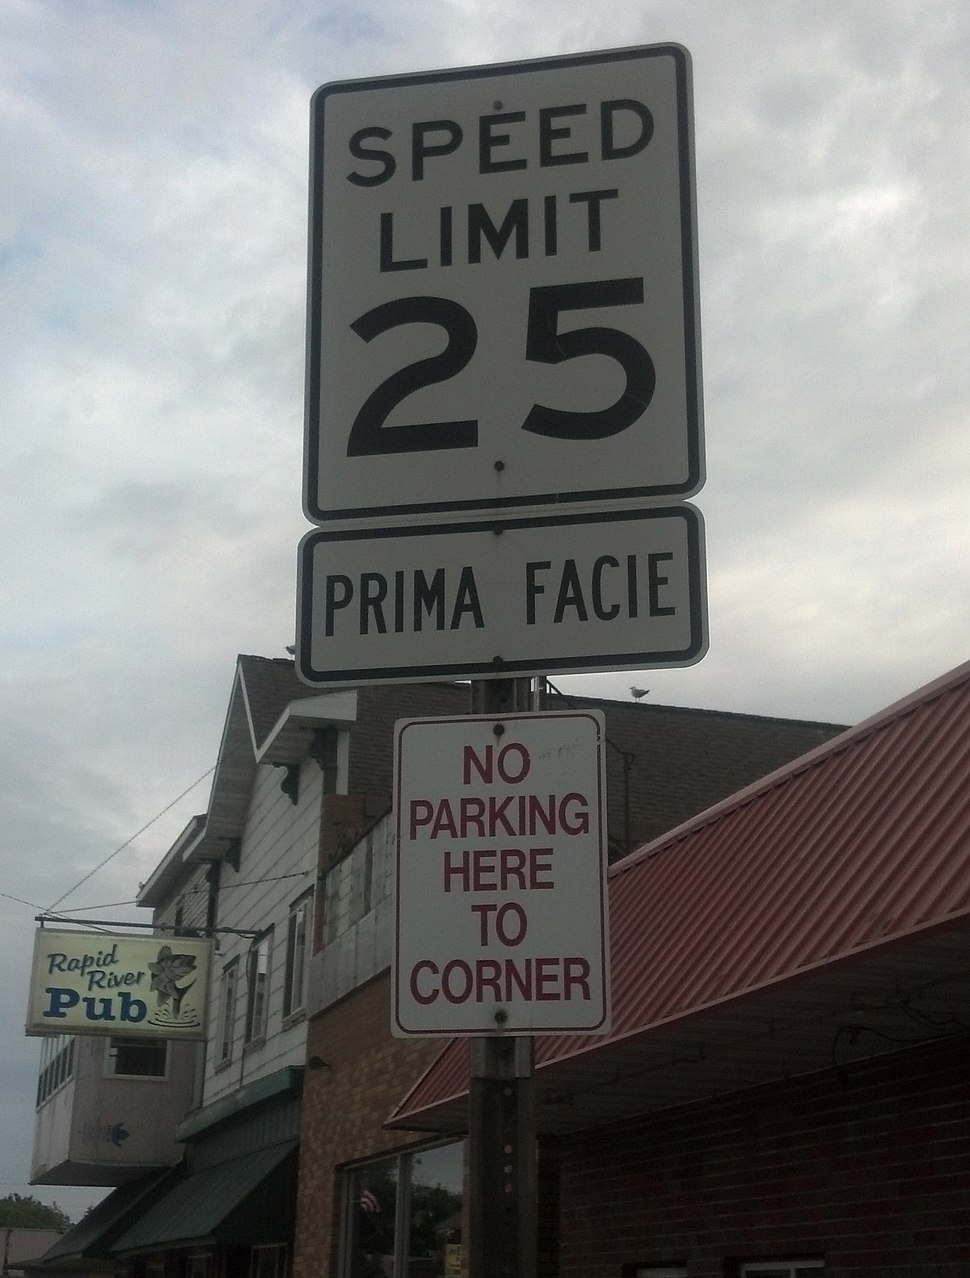 Example photo 1 of a prima facie speed limit - Rapid River, Michigan (United States)